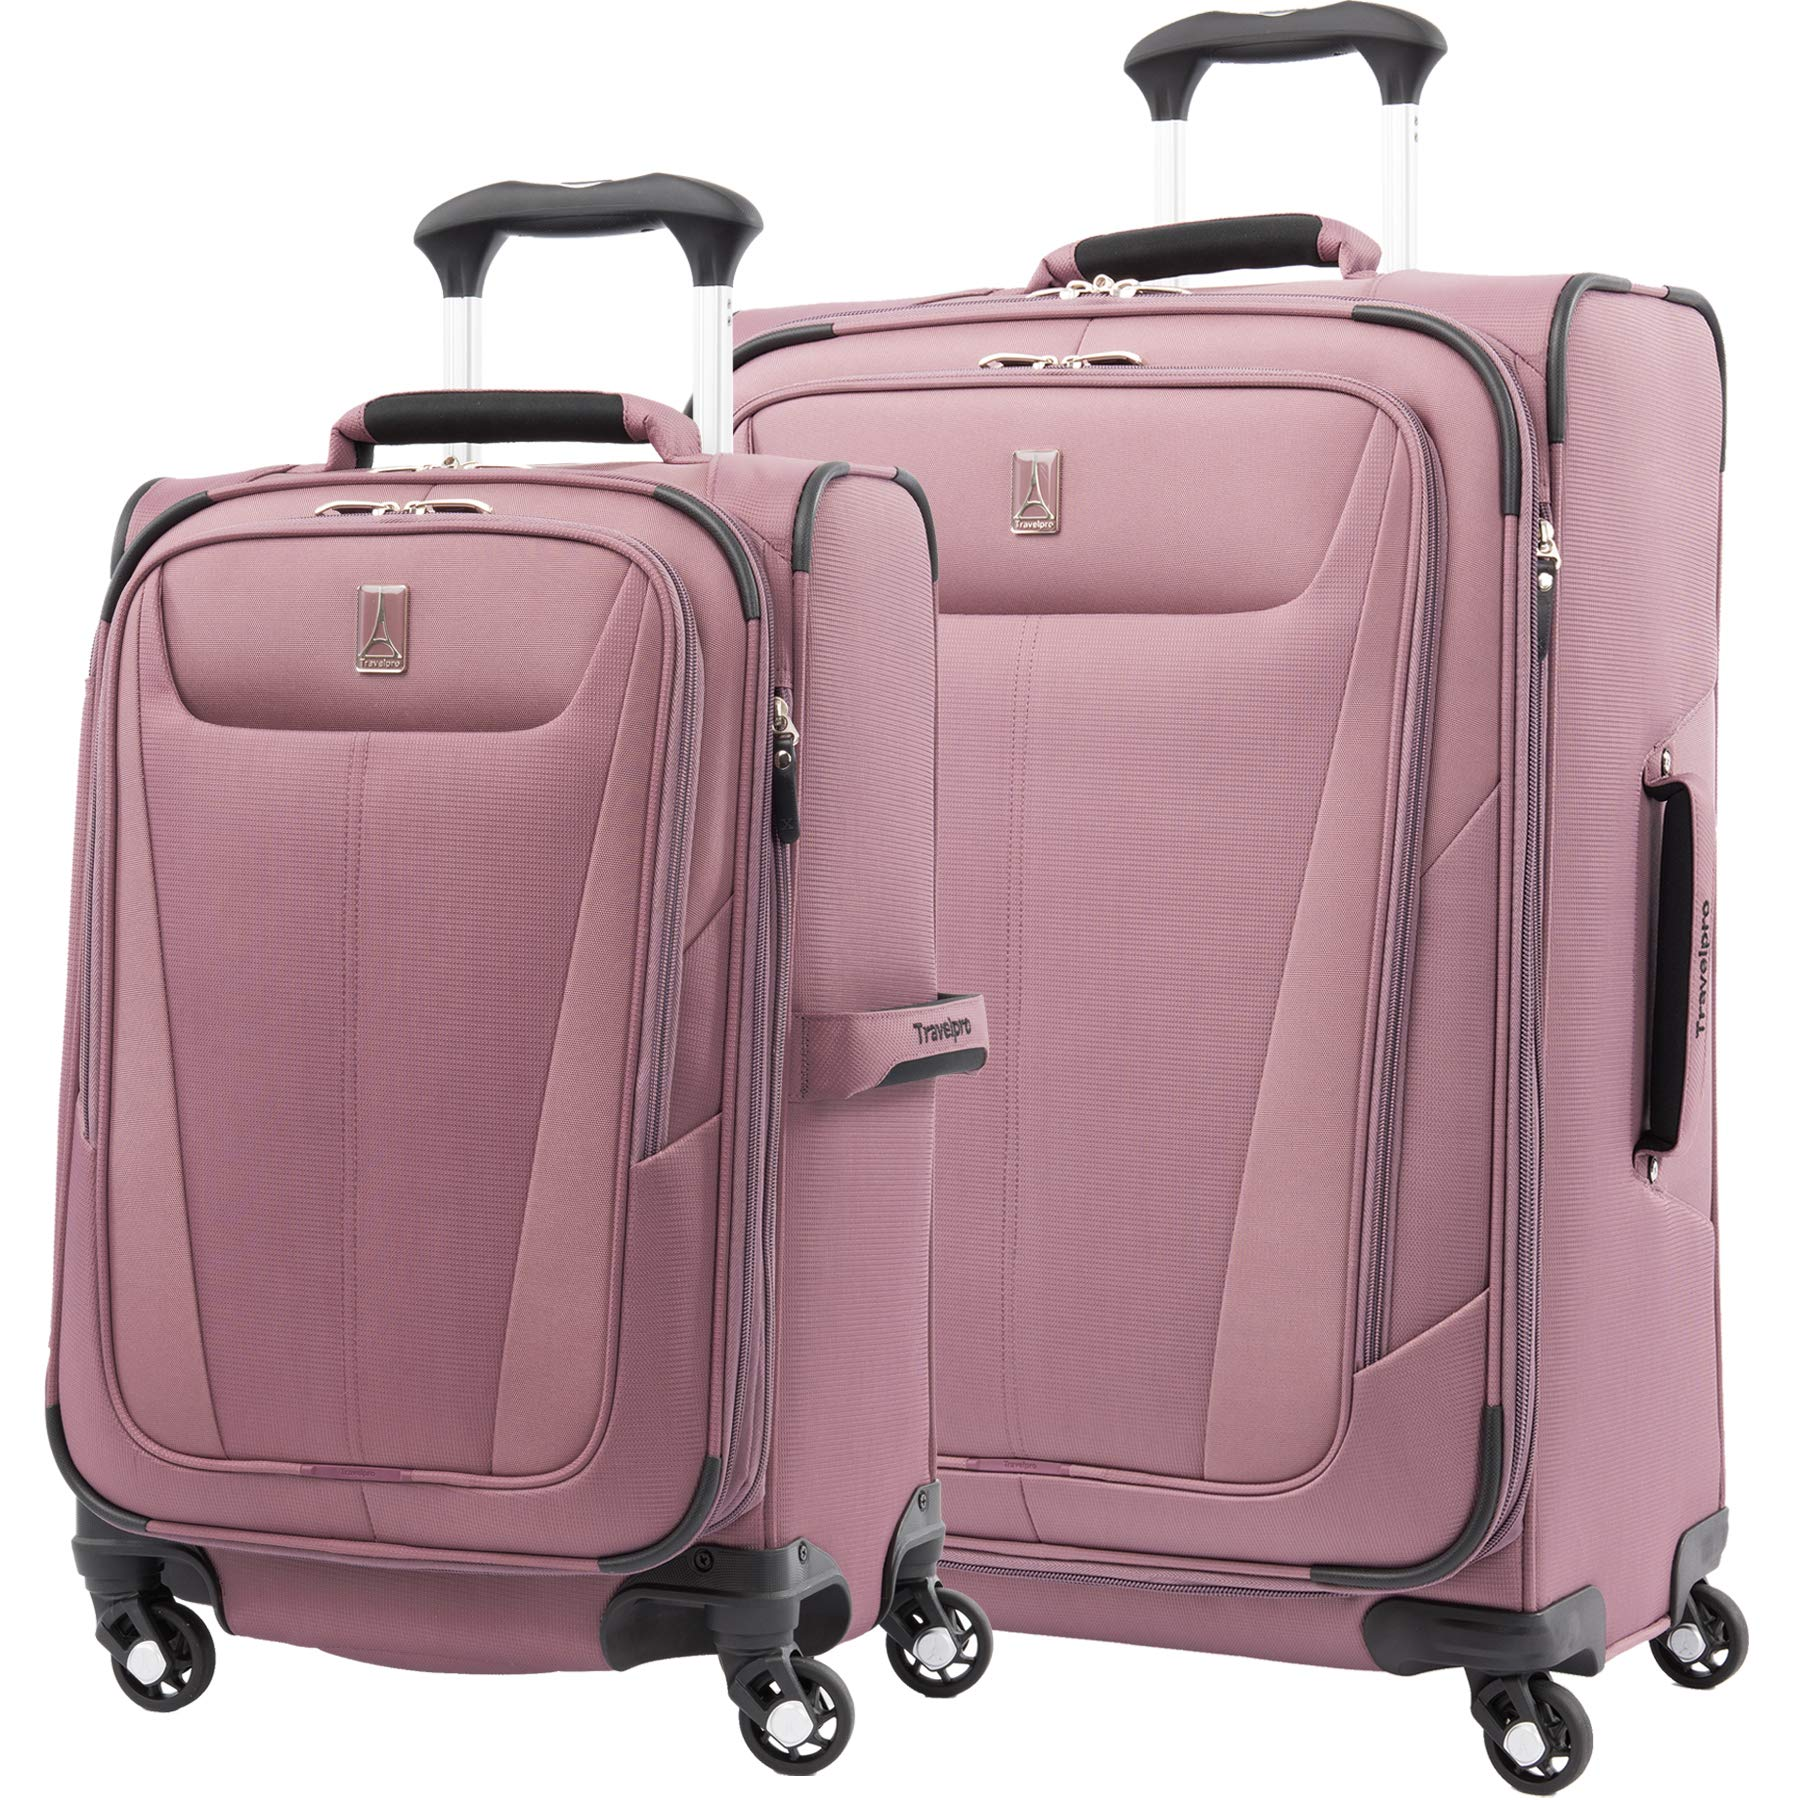 Travelpro 2-Piece Set(21'',25''), Dusty Rose by Travelpro